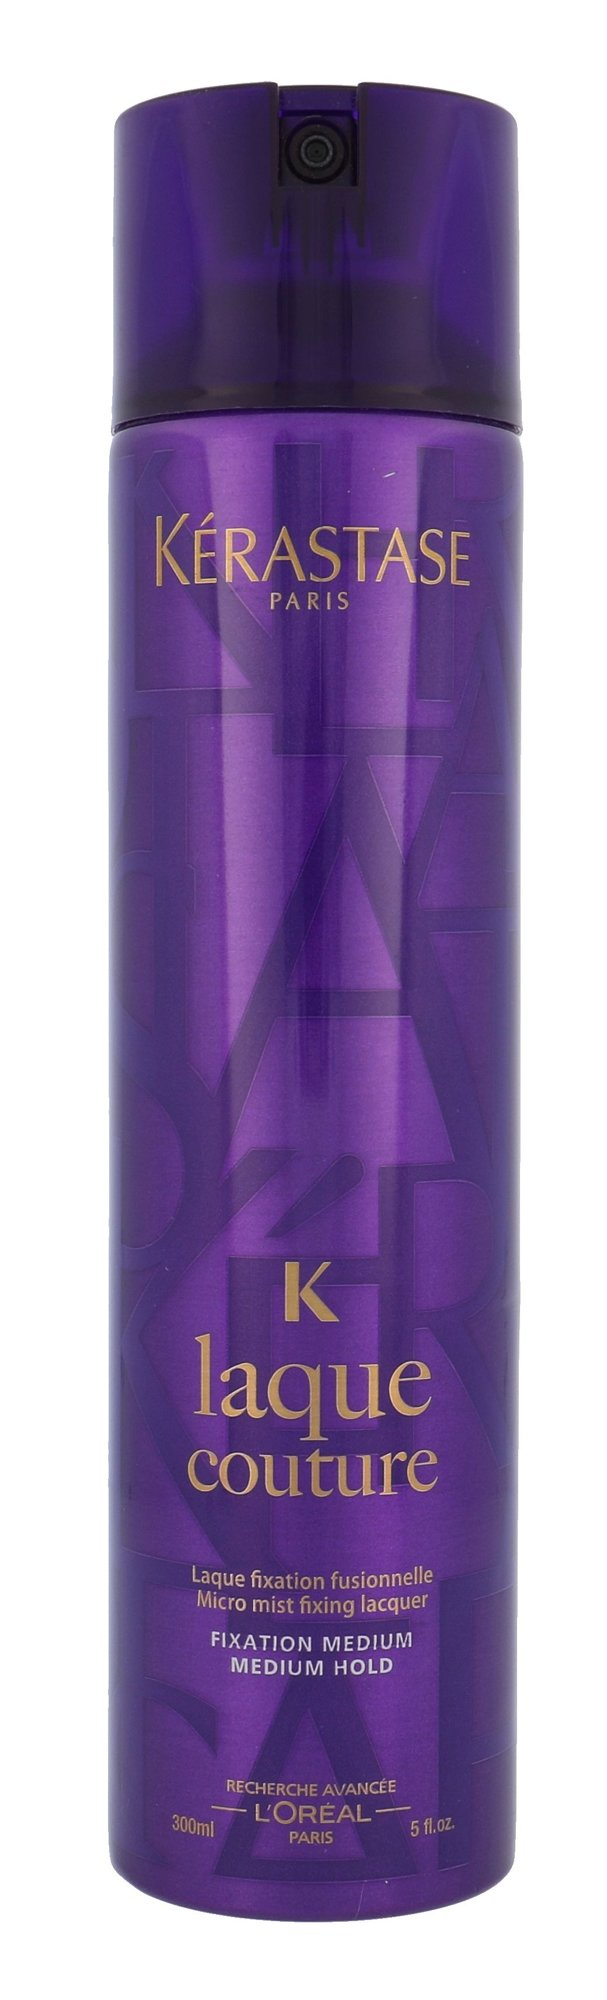 Kérastase K Laque Couture Cosmetic 300ml